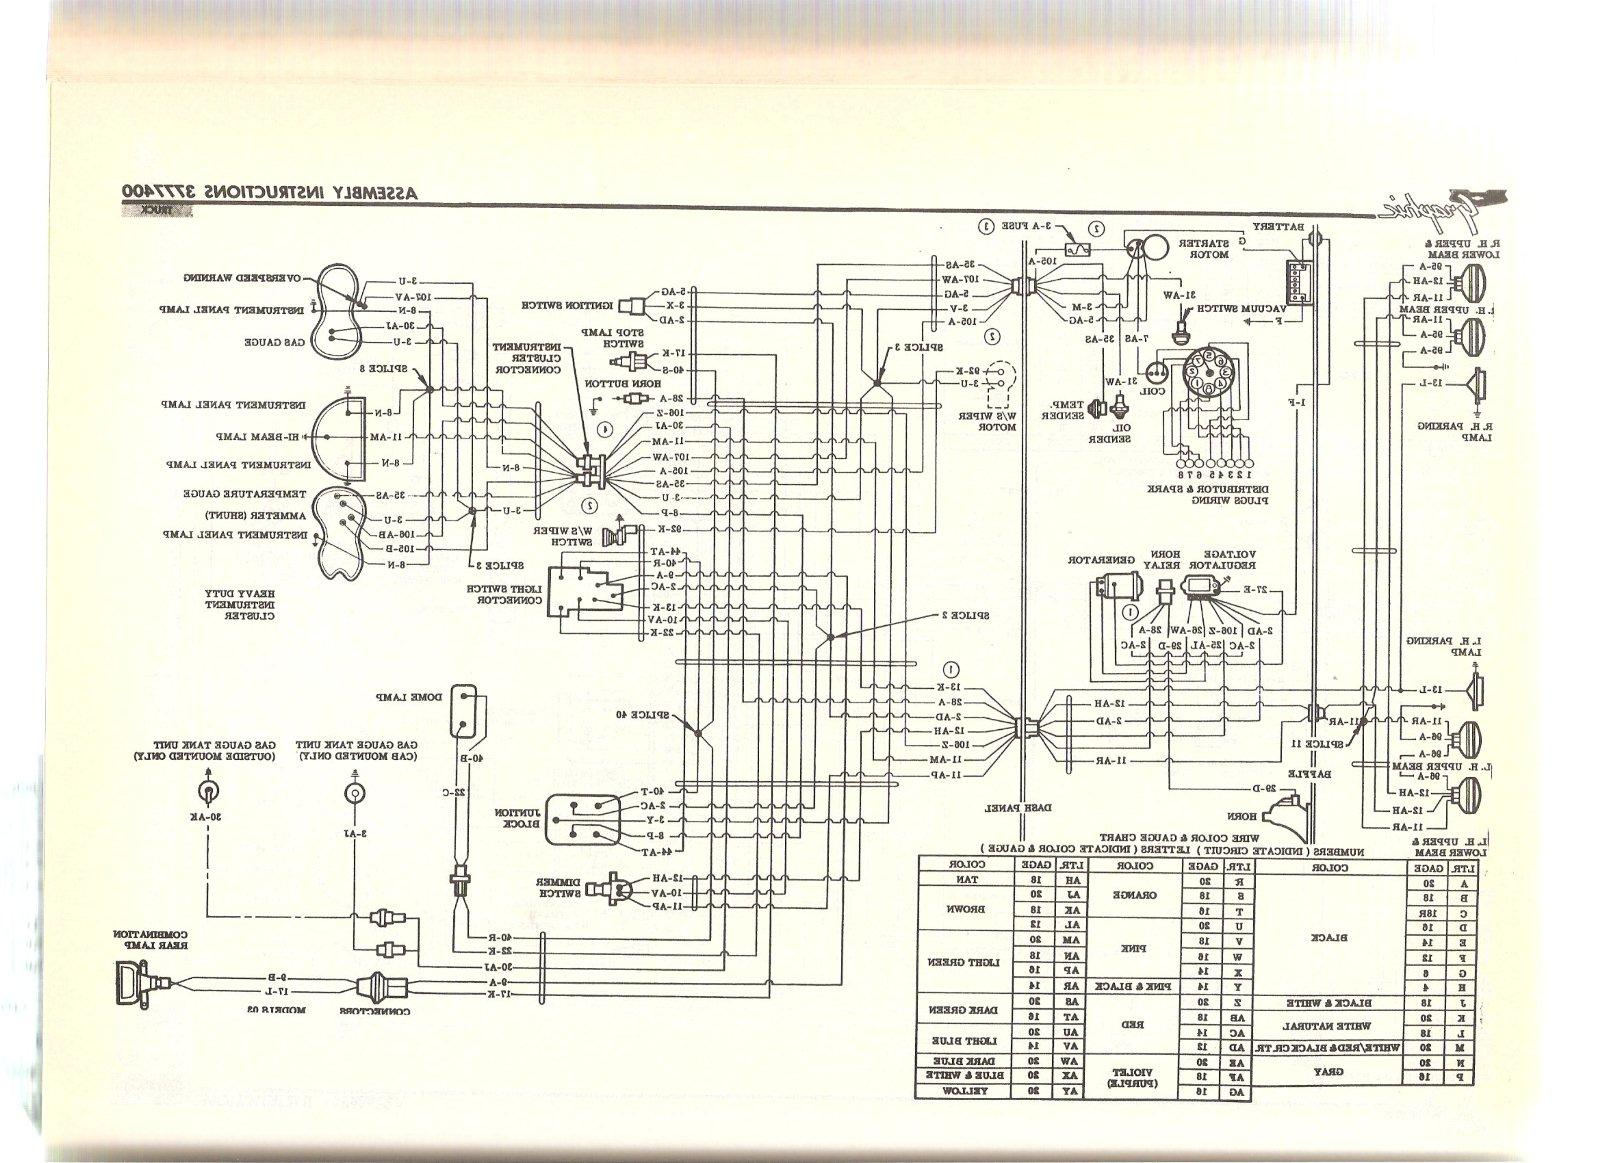 wiring diagrams 1941 lincoln zephyr blog wiring diagram 1955 Lincoln Continental wiring diagrams 1941 lincoln zephyr wiring diagram online willys wiring diagram diagram 1939 cadillac wiring diagram